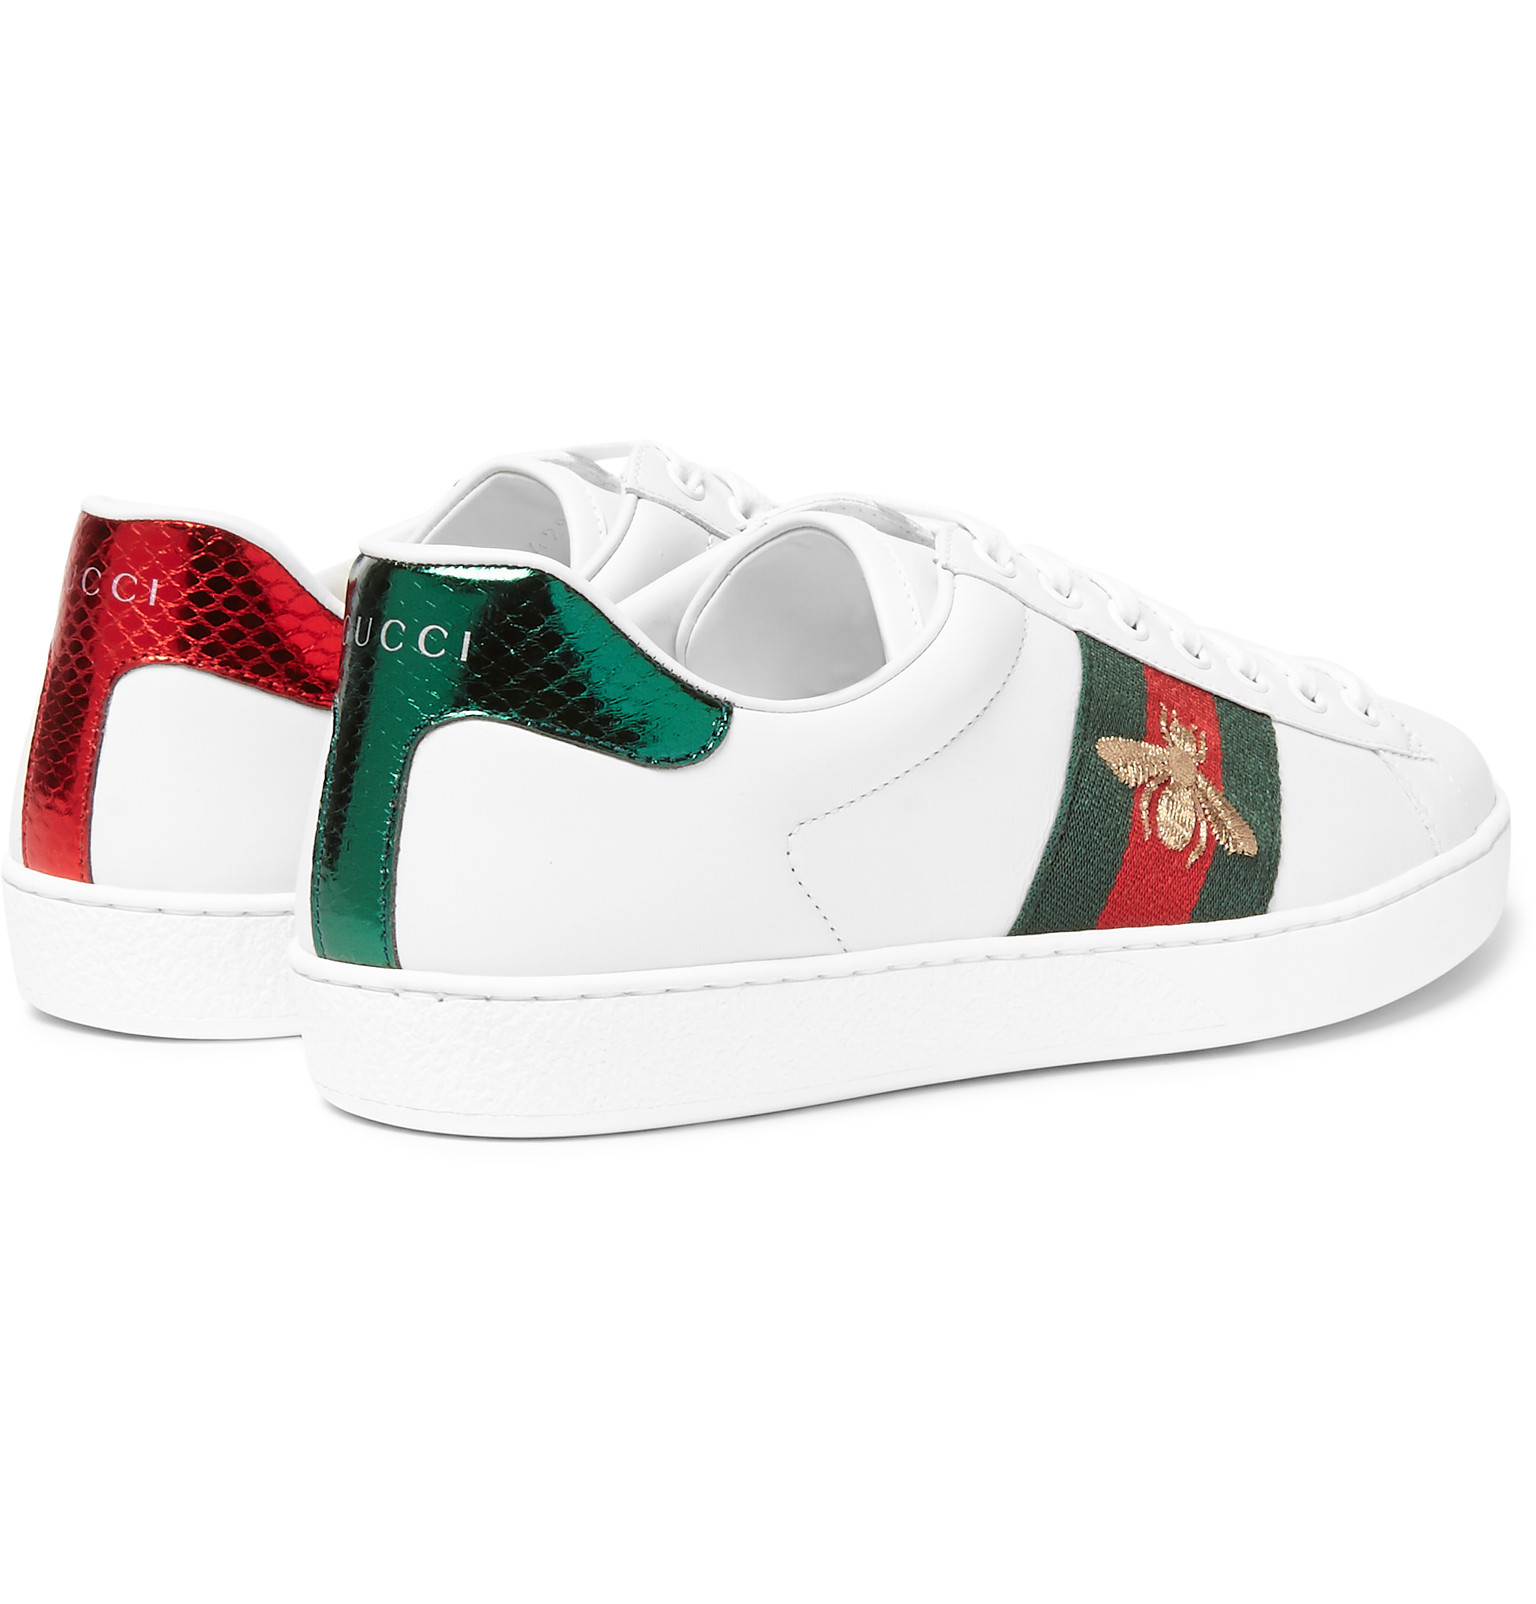 85146e3c264 Gucci Mens Sneakers White - Ontario Active School Travel